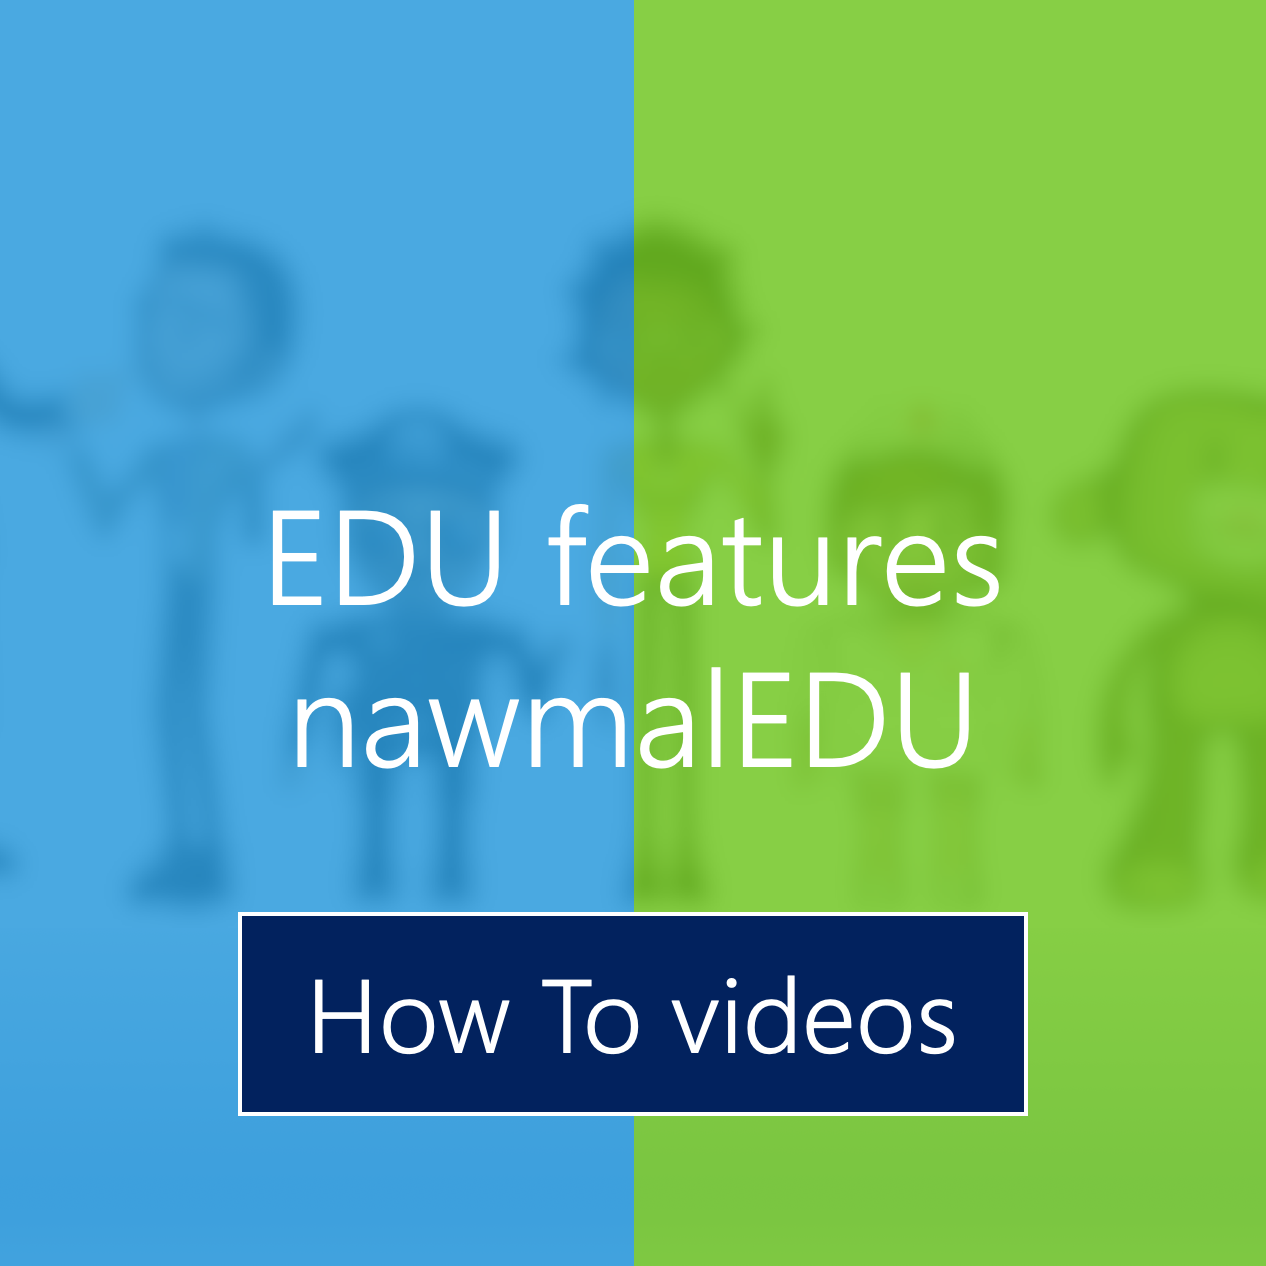 EDU version how to videos